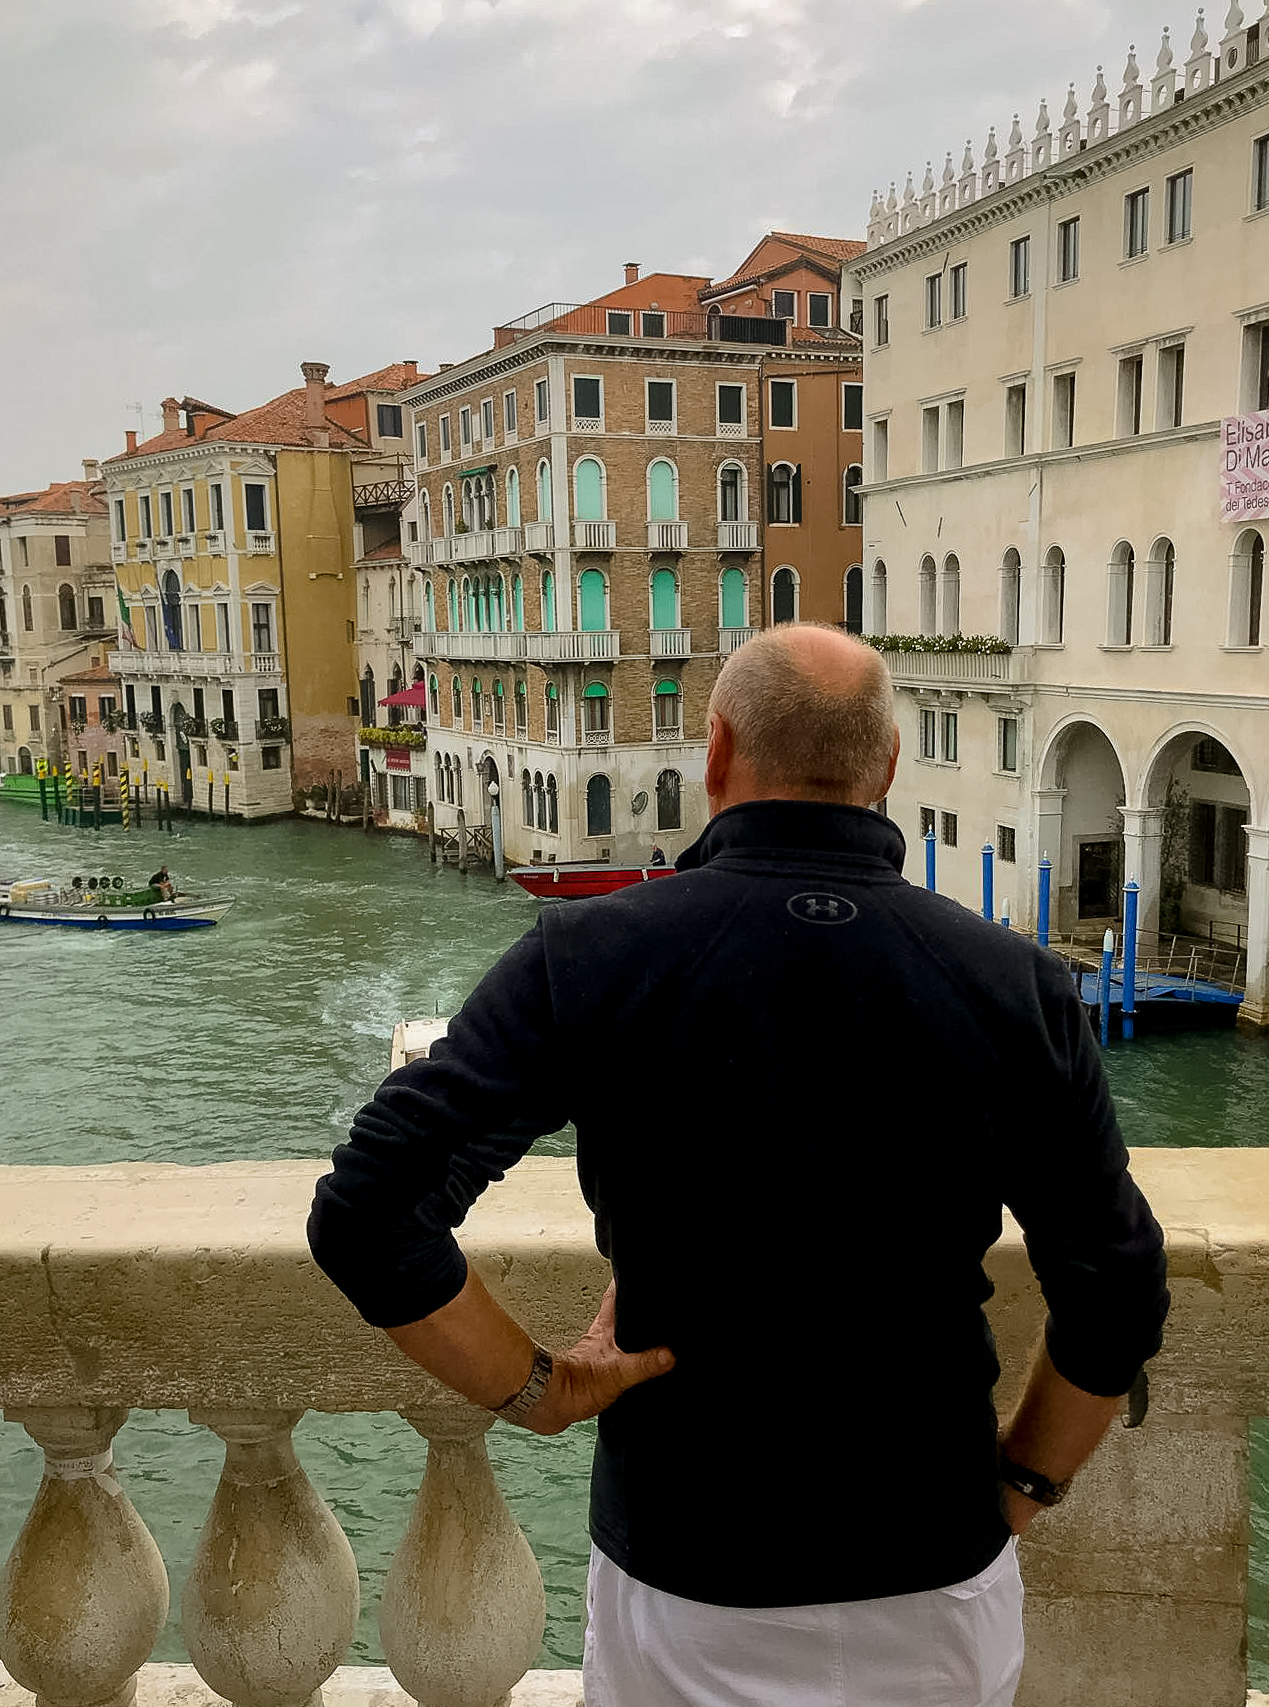 Man in black with left hand on hip, overlooking Venice's Grand Canal on his first trip to Italy. The green murky canal is lined with old multi-colored buildings.